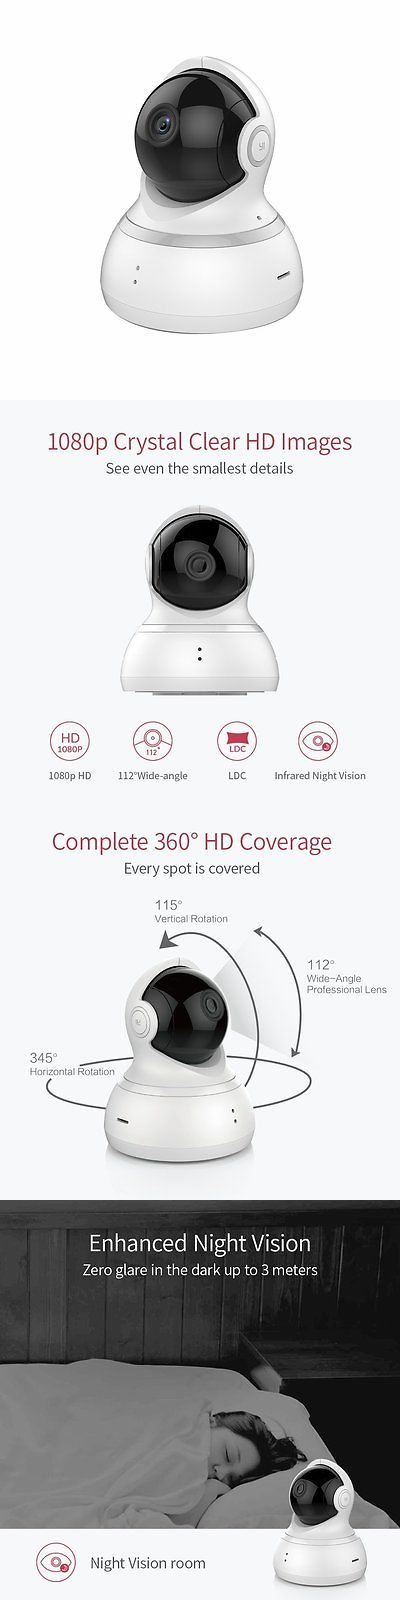 Security Cameras: Yi Dome Camera 1080P Hd Pan Tilt Zoom Wireless Ip Security Surveillance System -> BUY IT NOW ONLY: $70.85 on eBay!